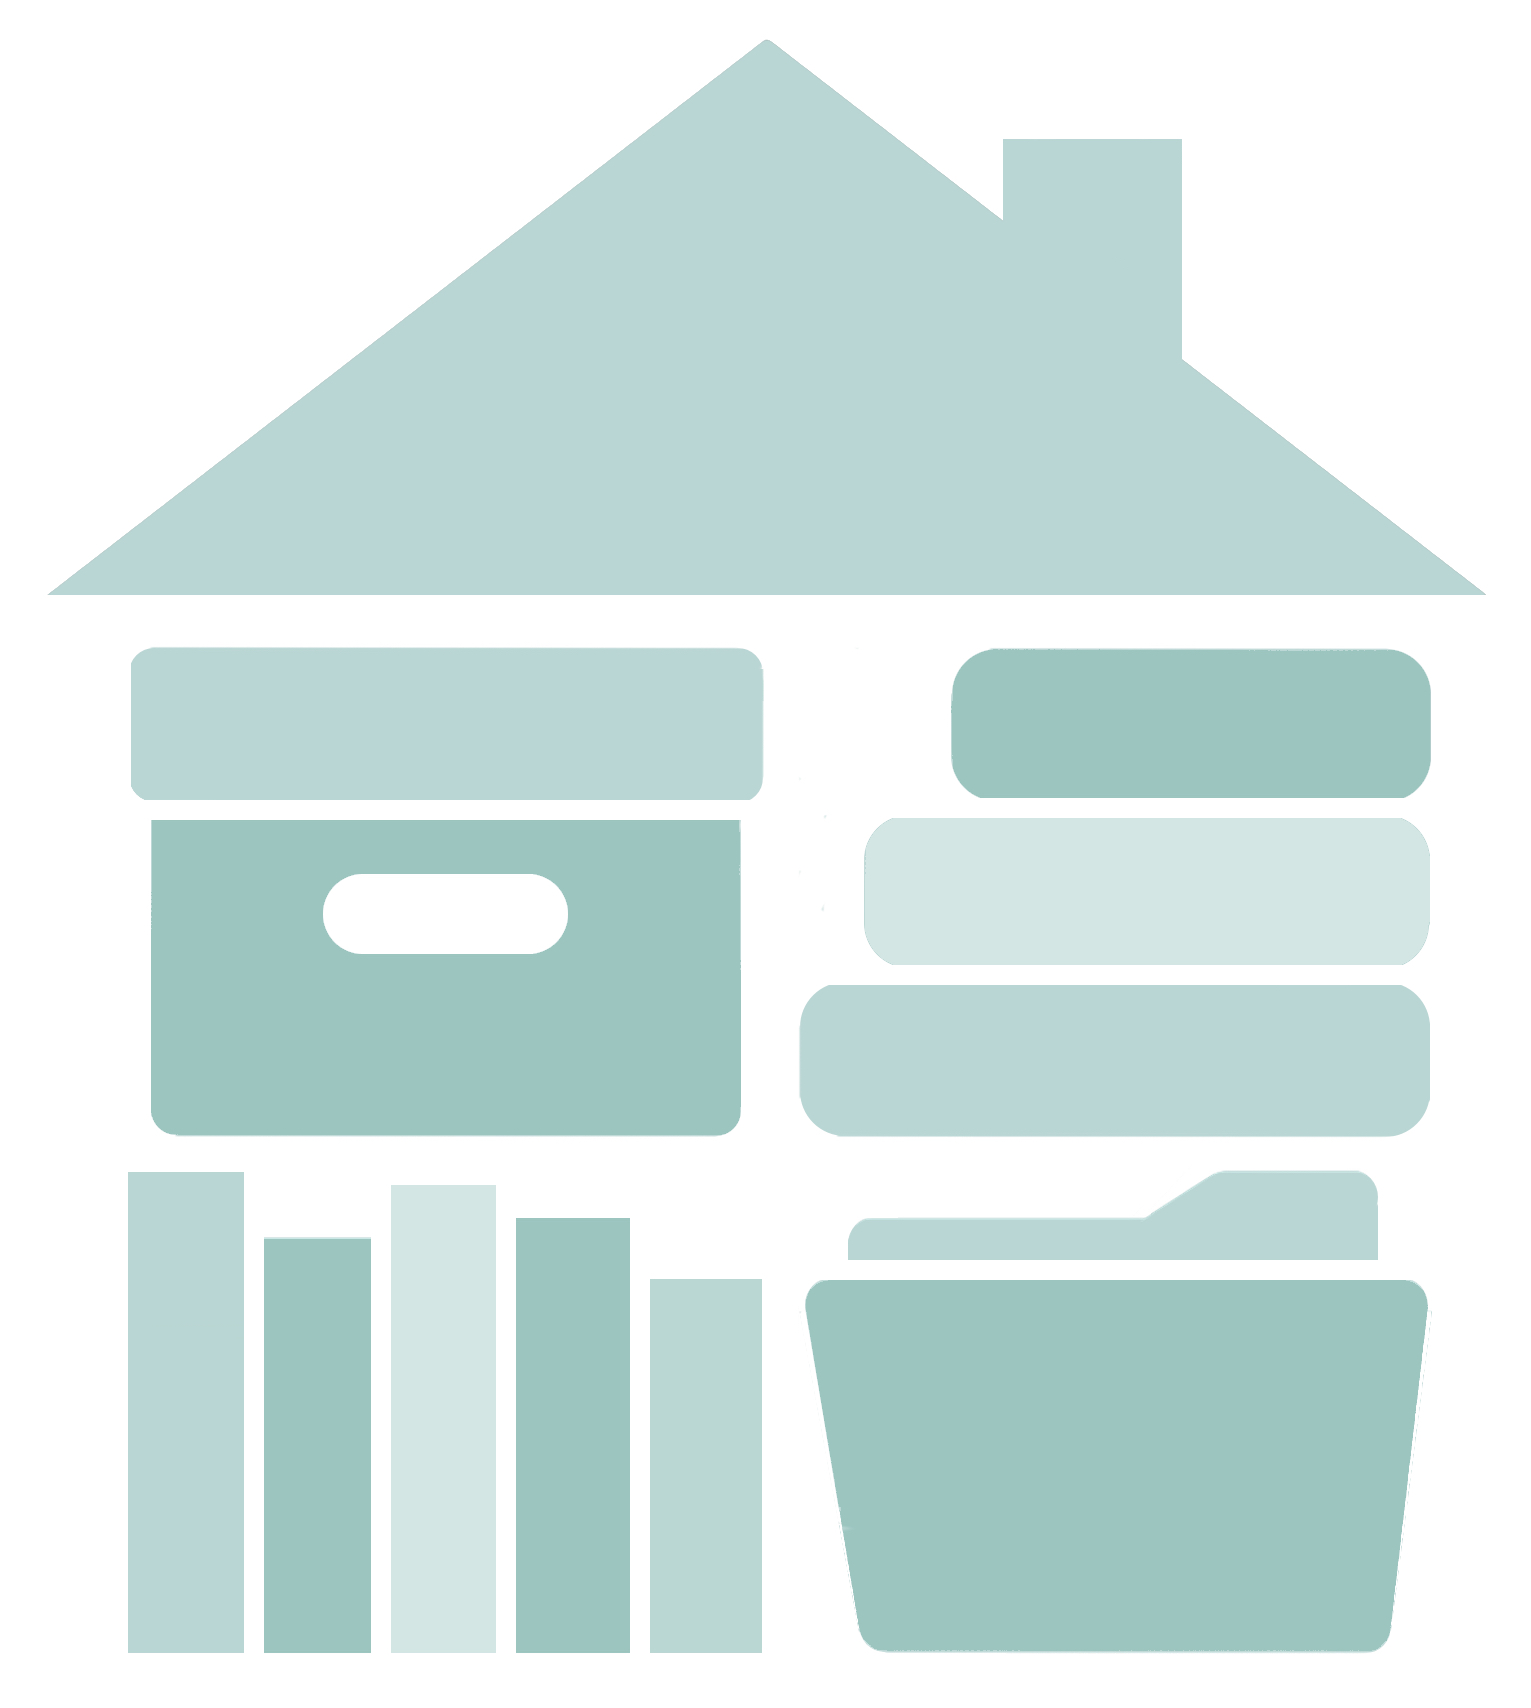 Logo of an organised house